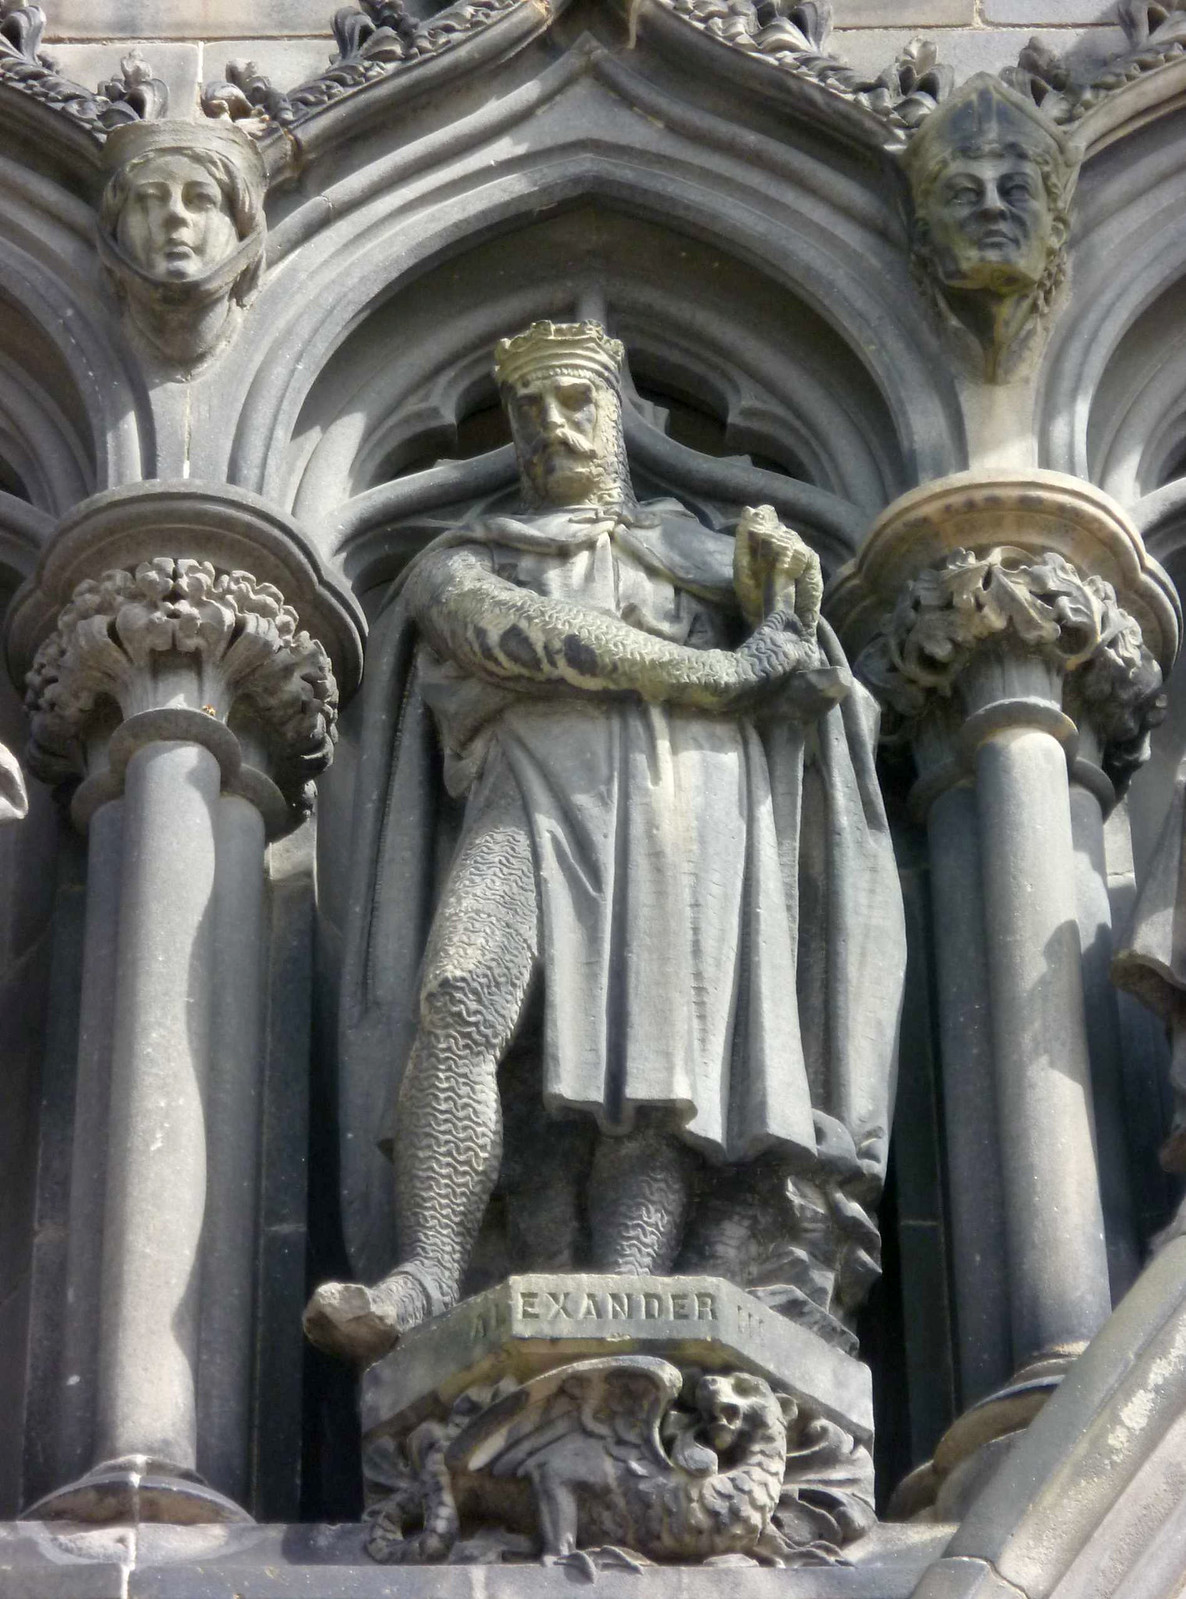 Alexander III of Scotland above the West door of St. Giles, Edinburgh